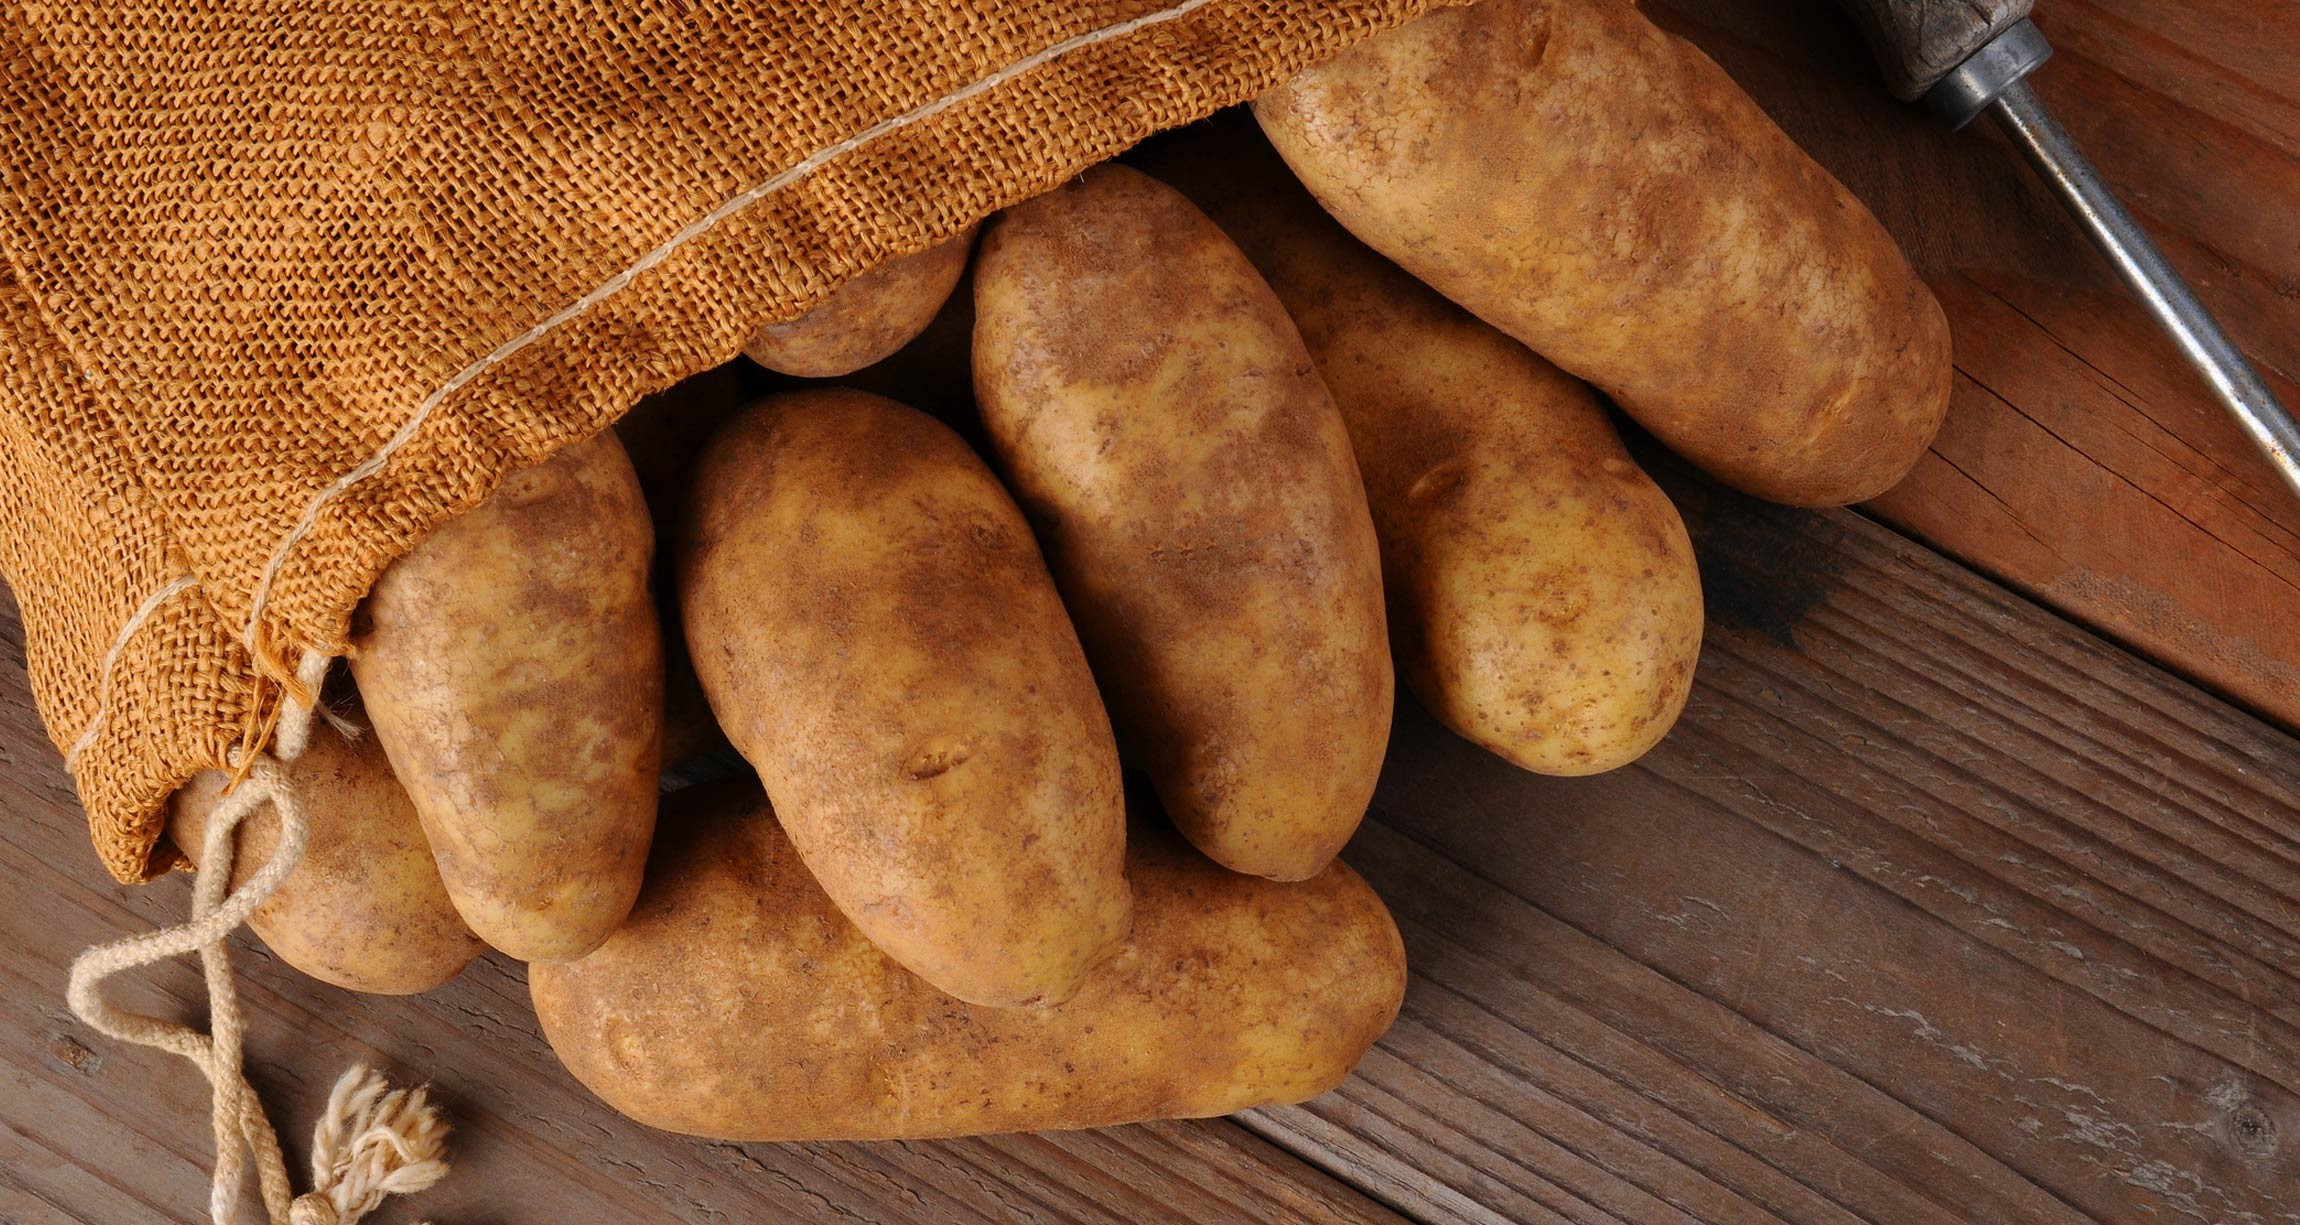 Are Potatoes Healthy? The Surprising Truth About This Controversial Vegetable